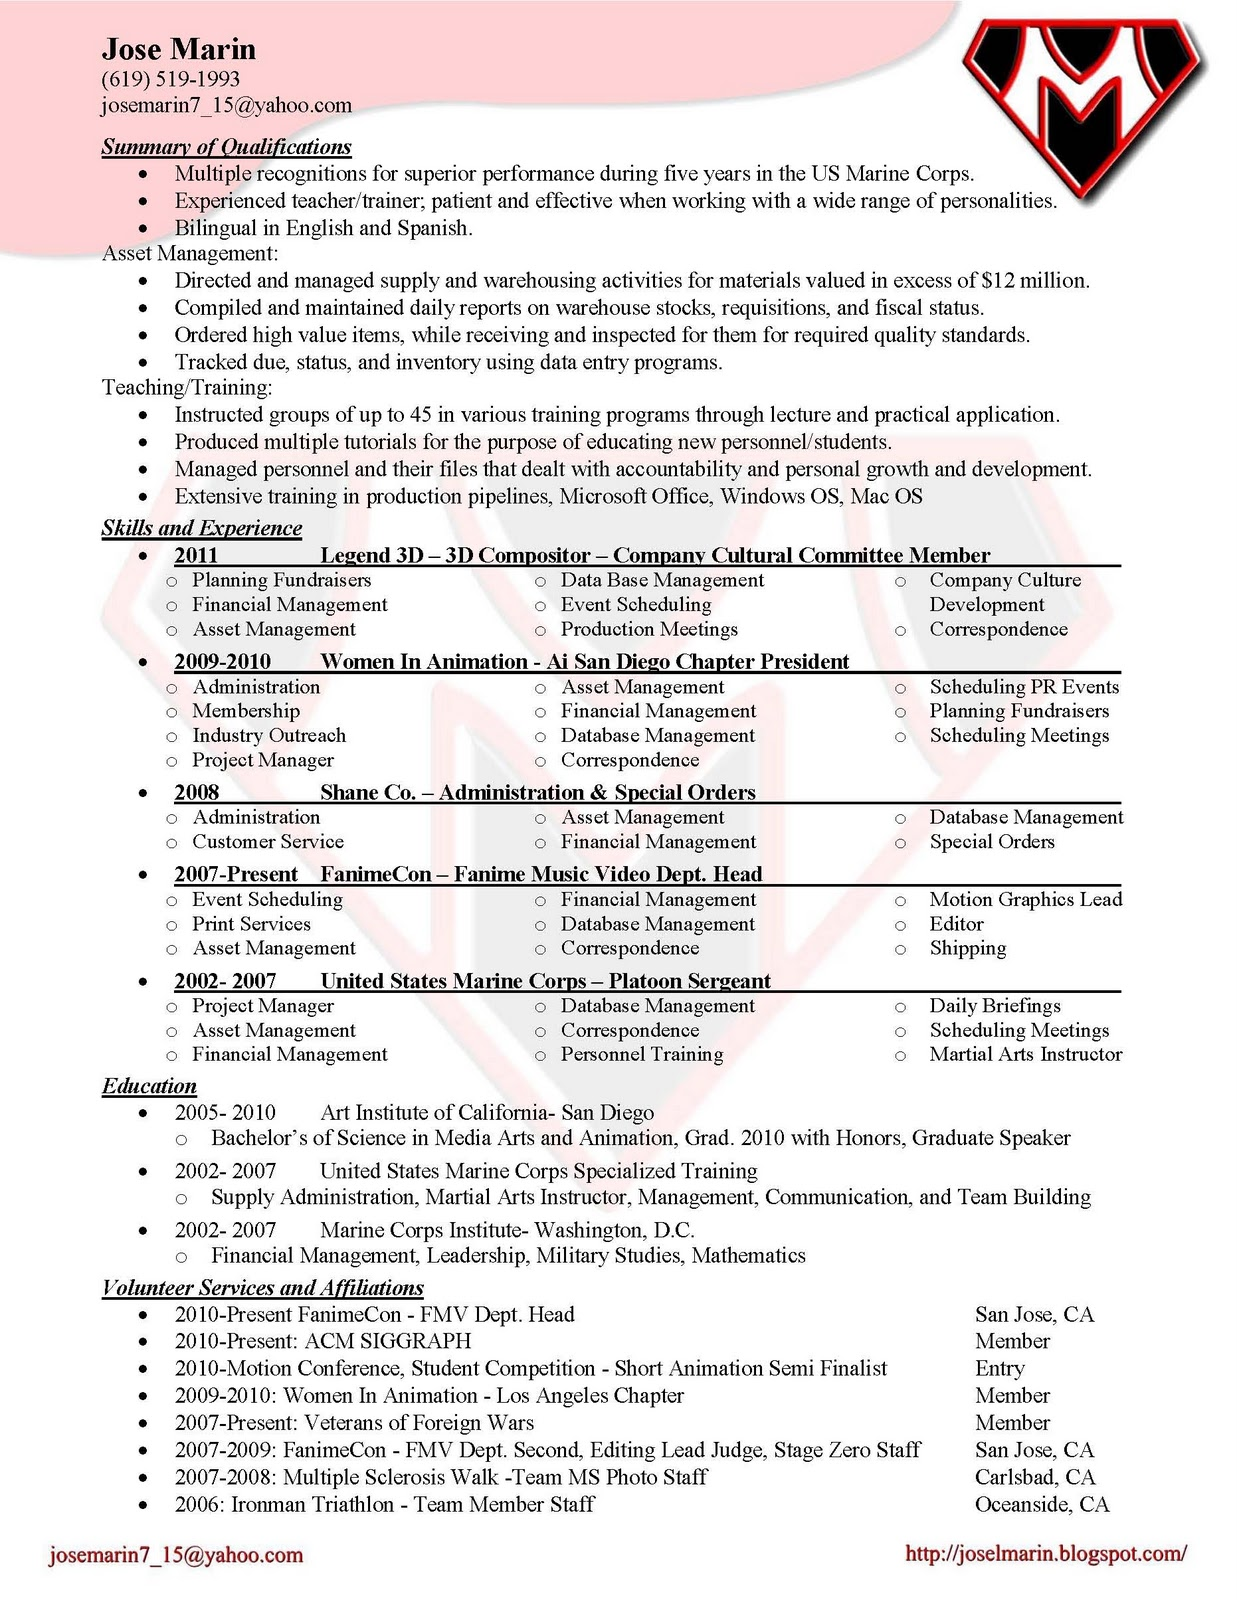 Resume Editor Free Resume Templates Medical Billing Resume Medical  Transcription Editor Sample Resume Medical Transcriptionist Resume